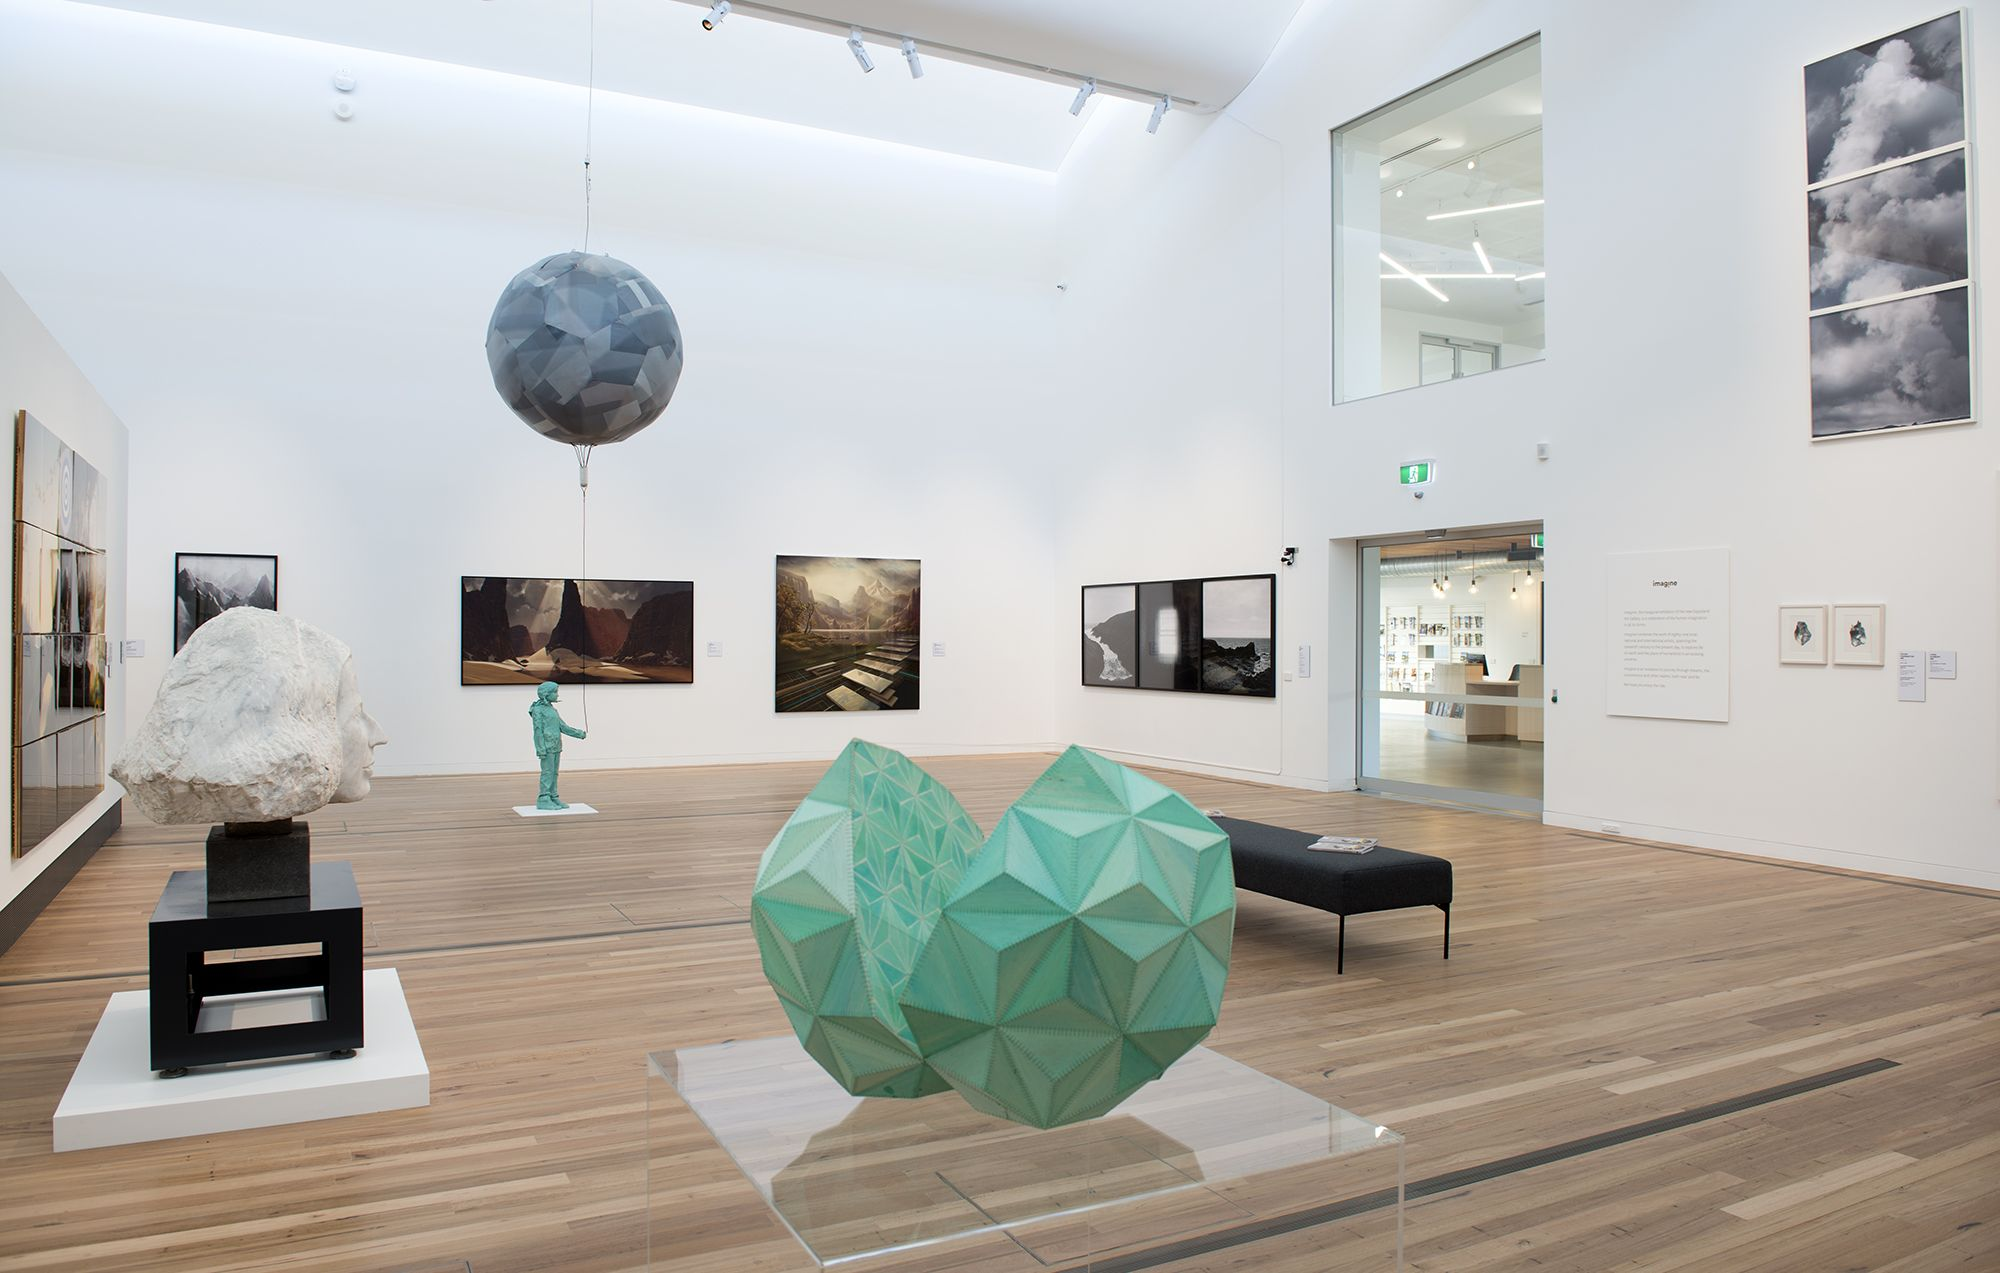 Installation view of the exhibition Imagine. Photograph by Lindsay Roberts